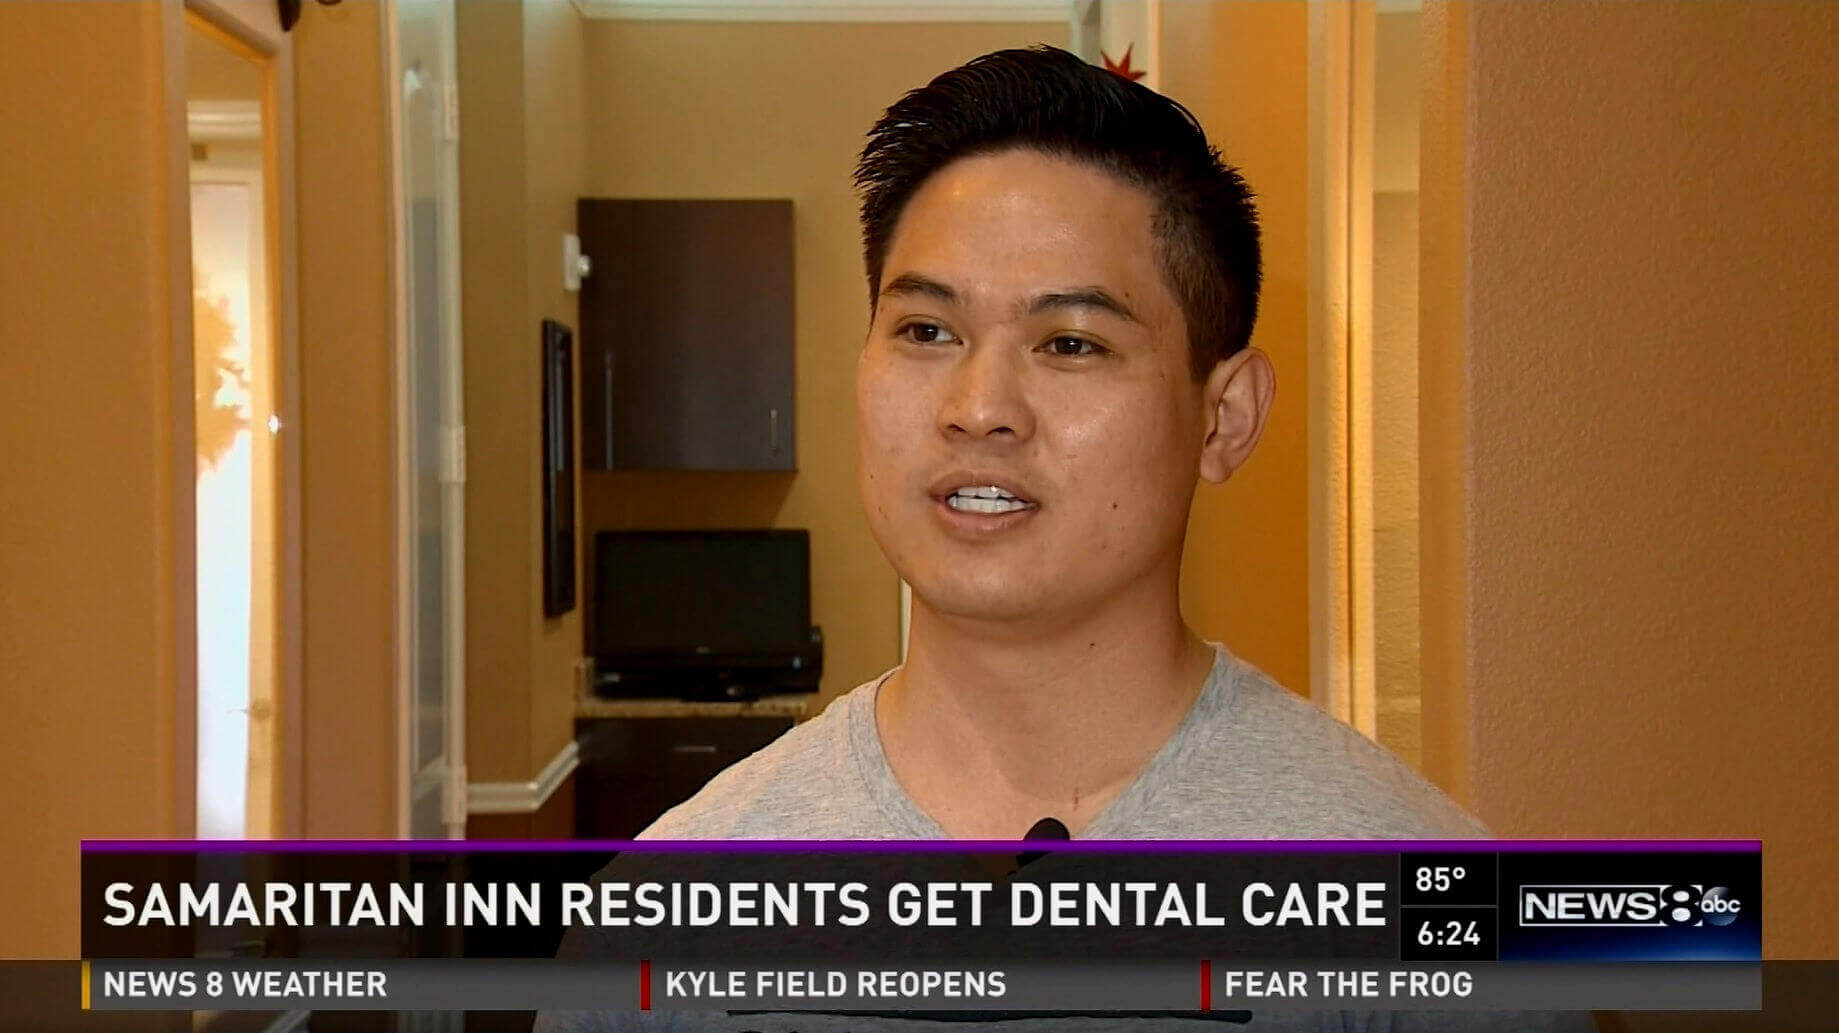 Dental care story on the news